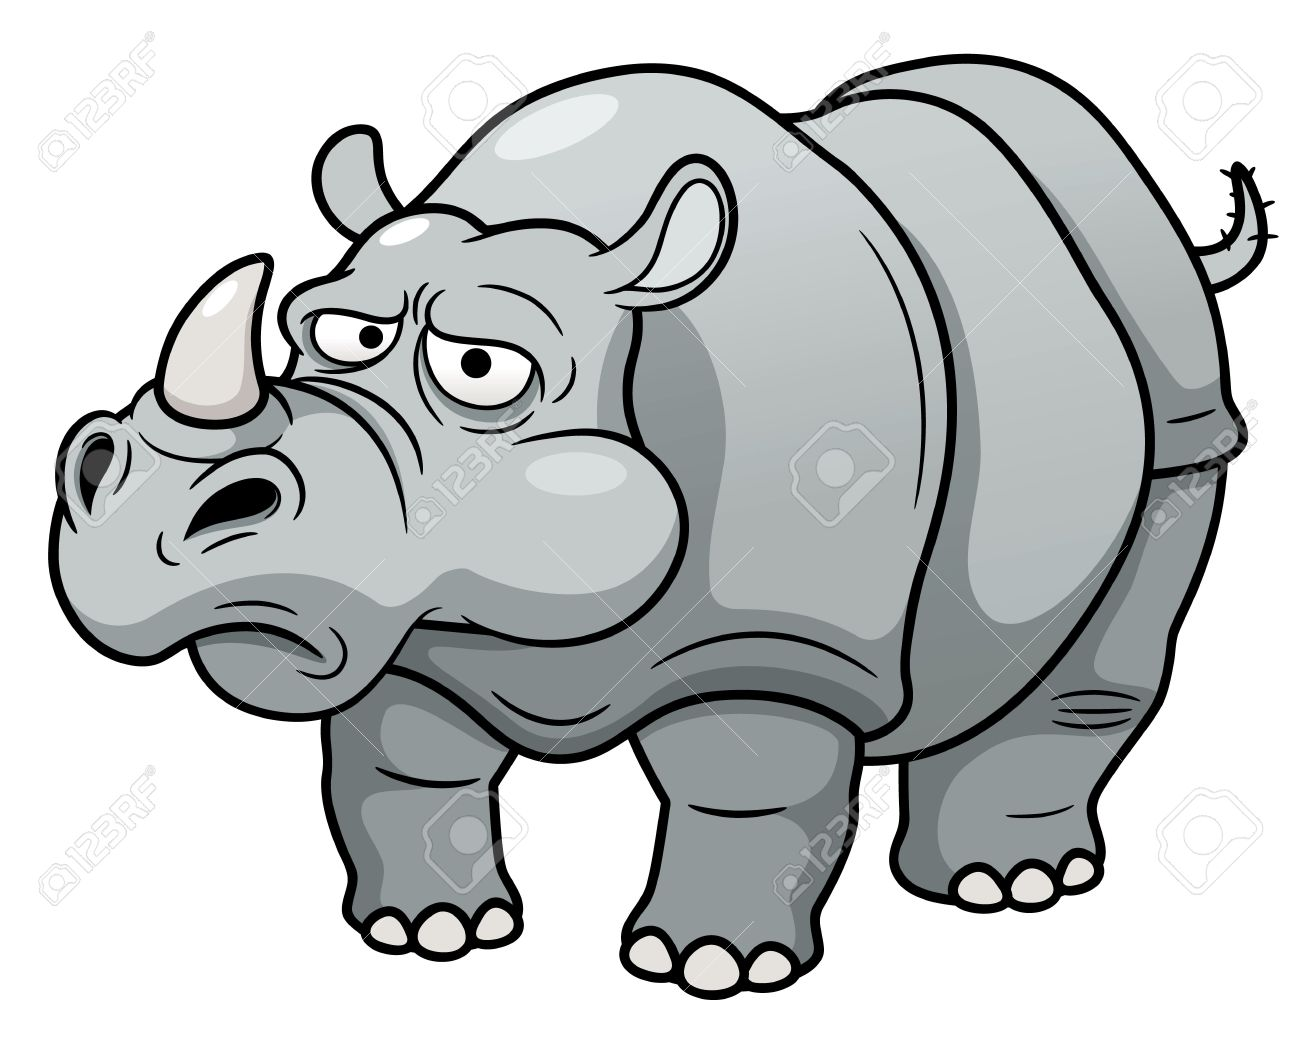 hight resolution of 1300x1056 illustration of cartoon rhino royalty free cliparts vectors